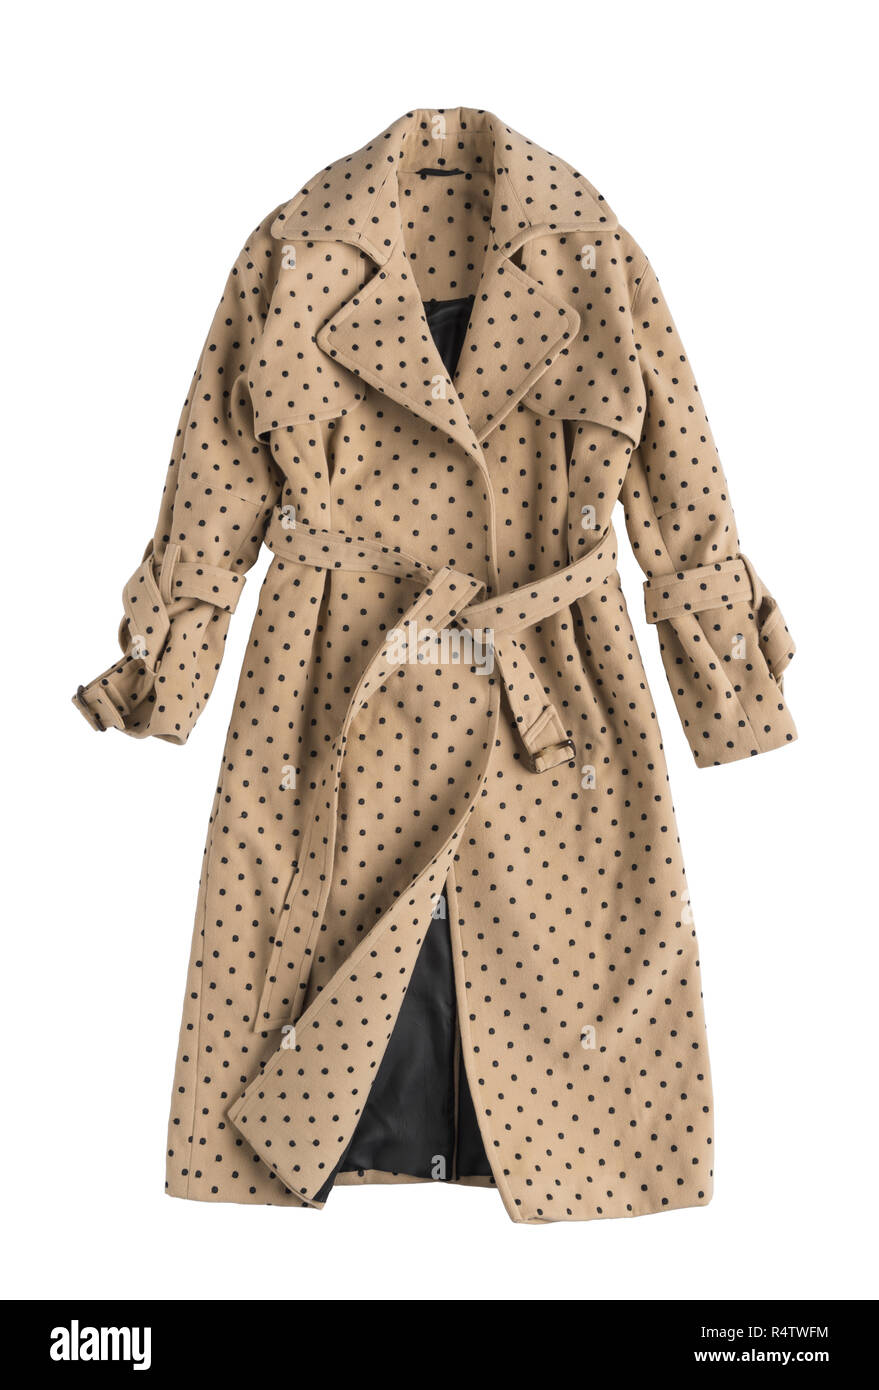 beige women's trench coat in polka dots on a white background - Stock Image